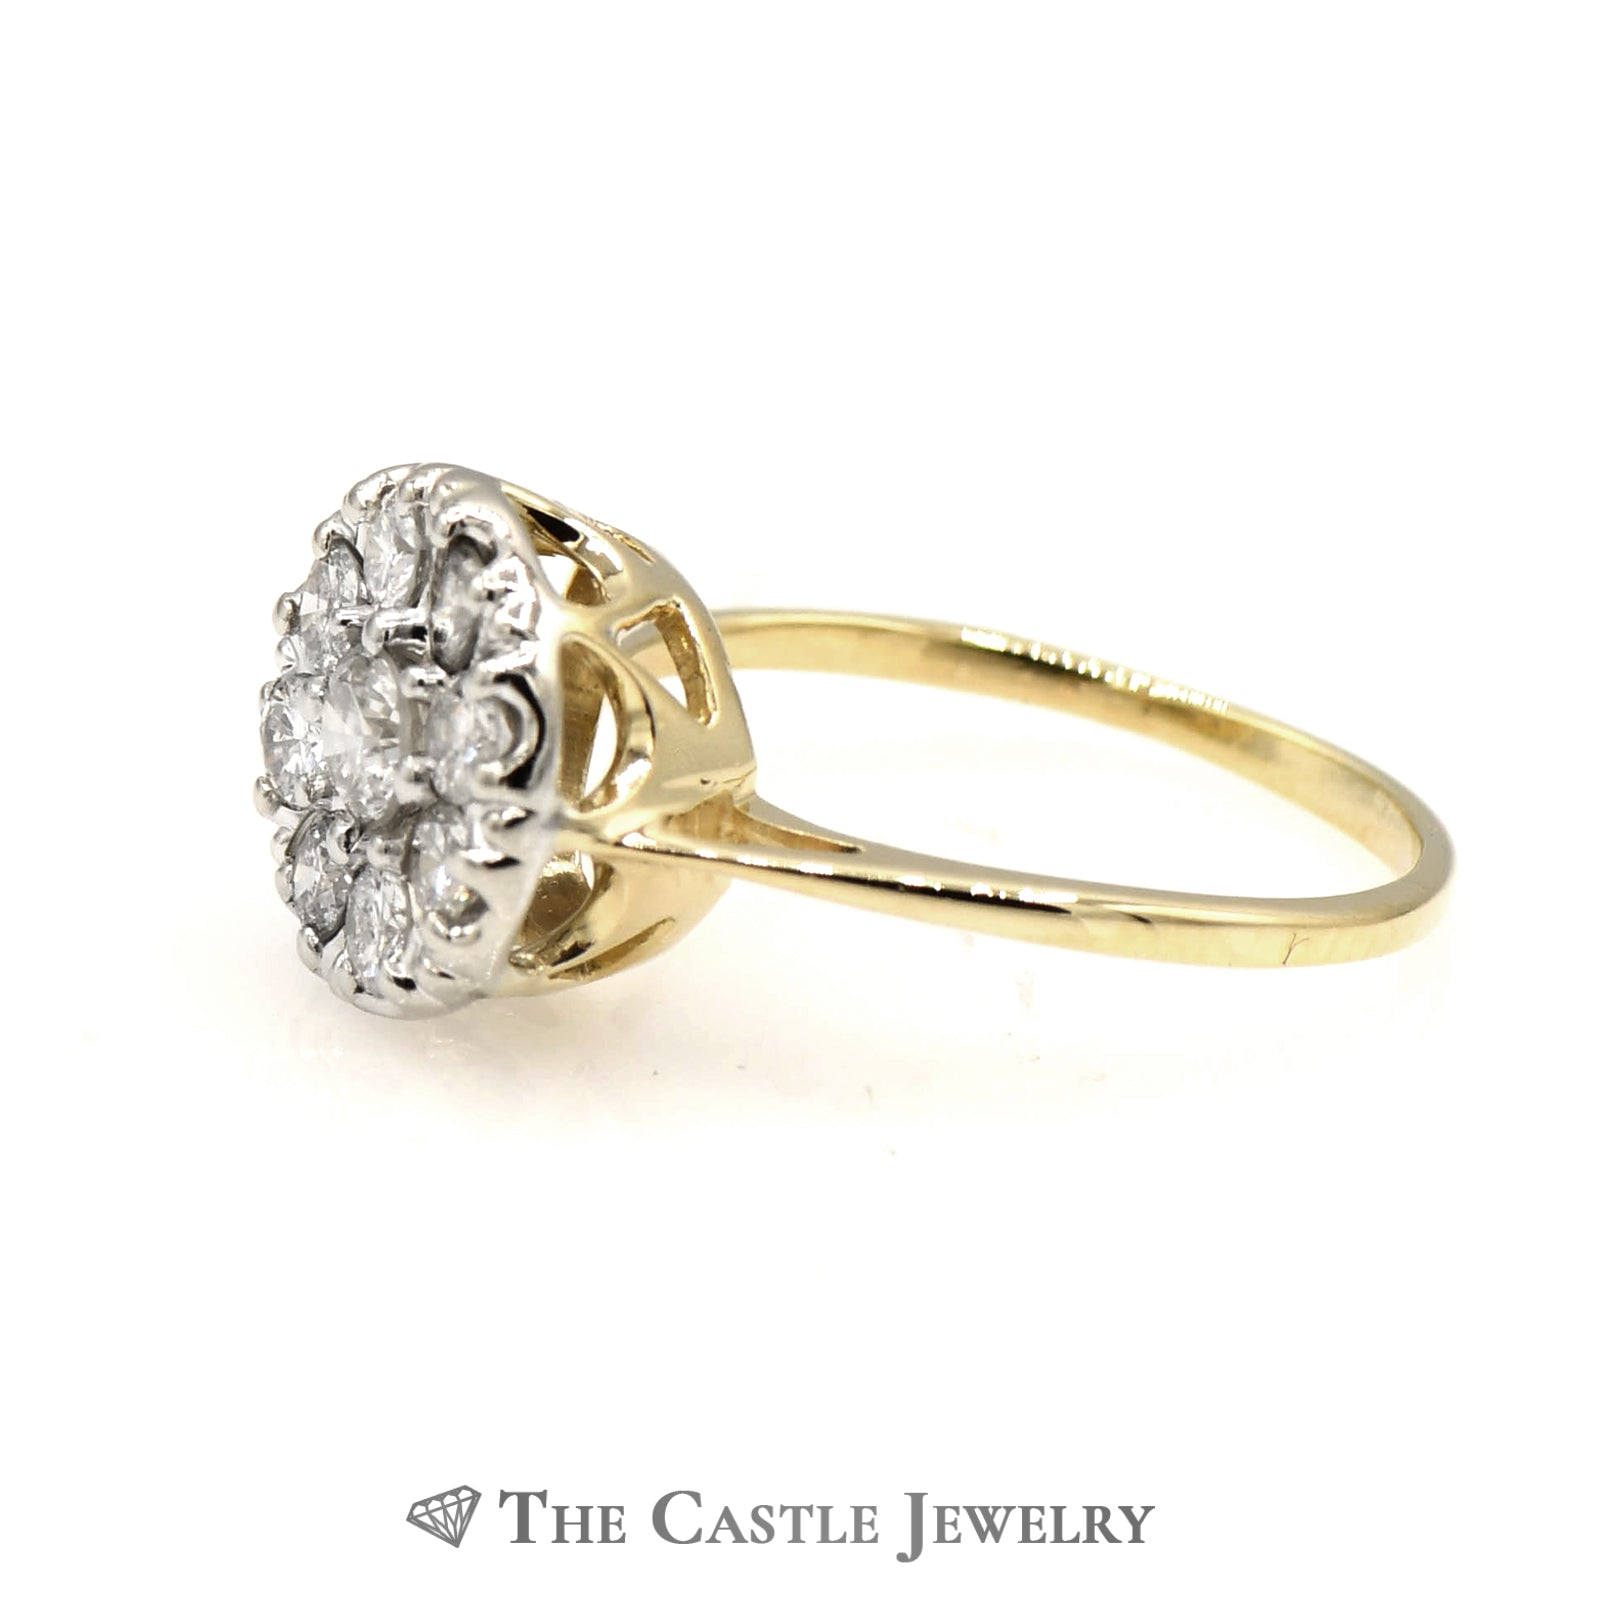 9 Diamond 1cttw Round Cluster Ring in 14K Yellow Gold-2